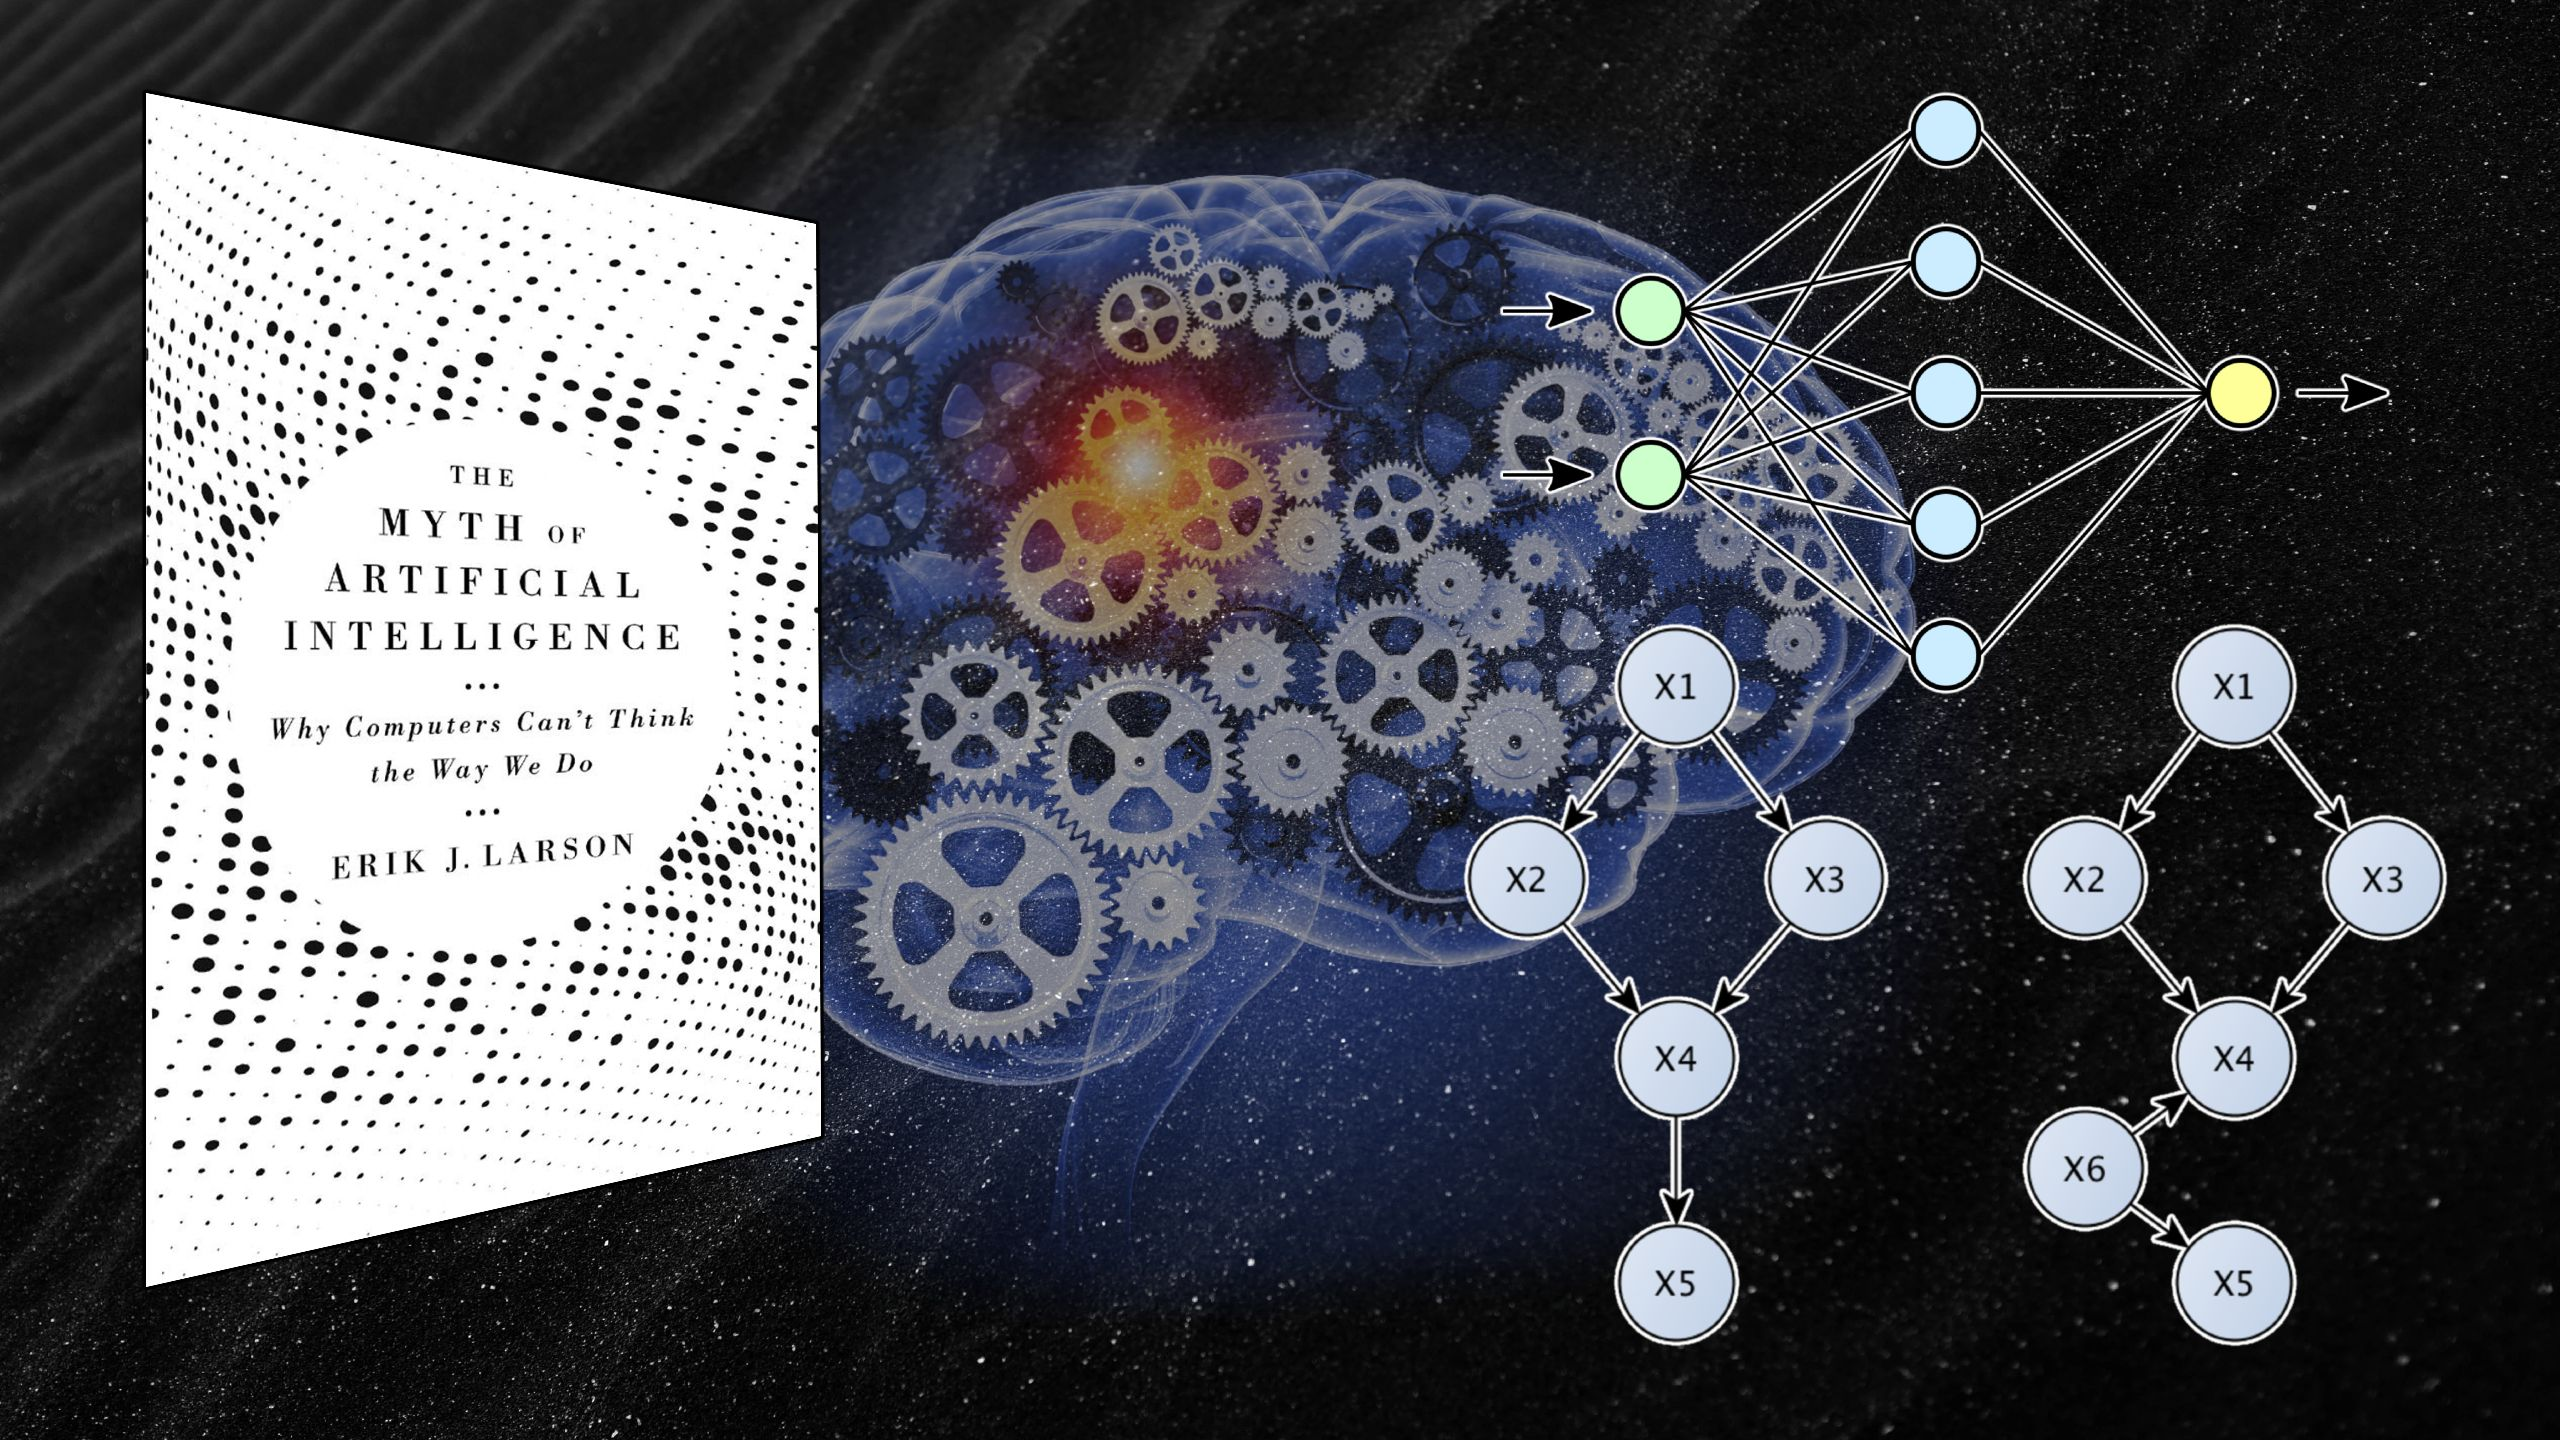 Recent advances in deep learning have rekindled interest in the imminence of machines that can think and act like humans, or artificial general intell